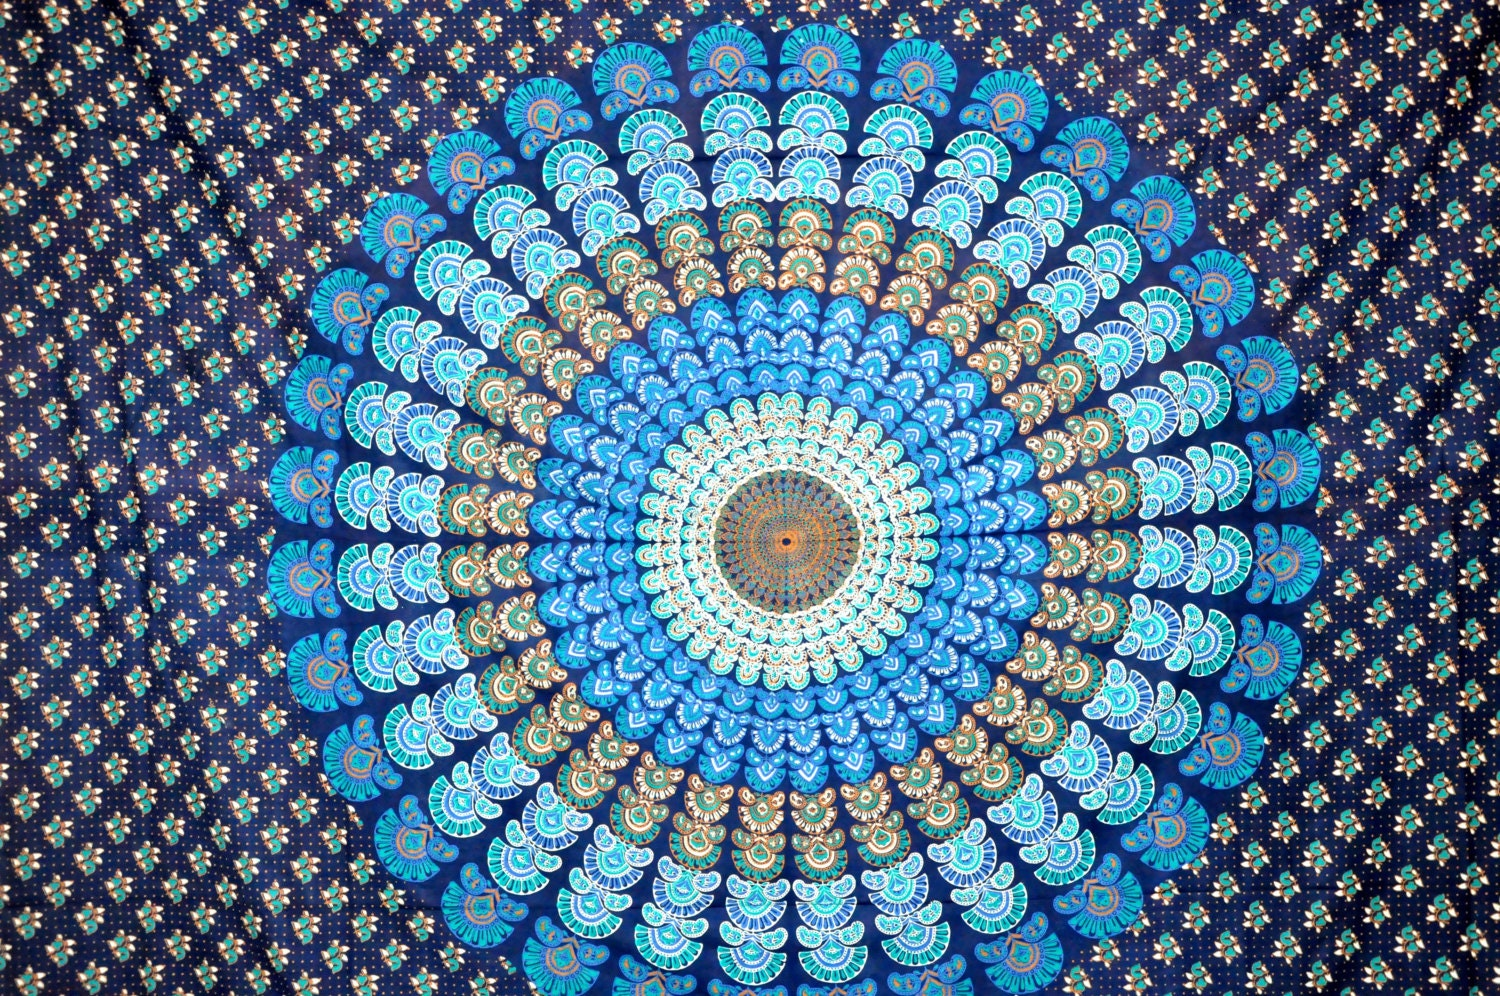 Hippie tapestry wallpaper images wall tapestries - Blue Indian Mandala Tapestry Indian Wall Hanging By